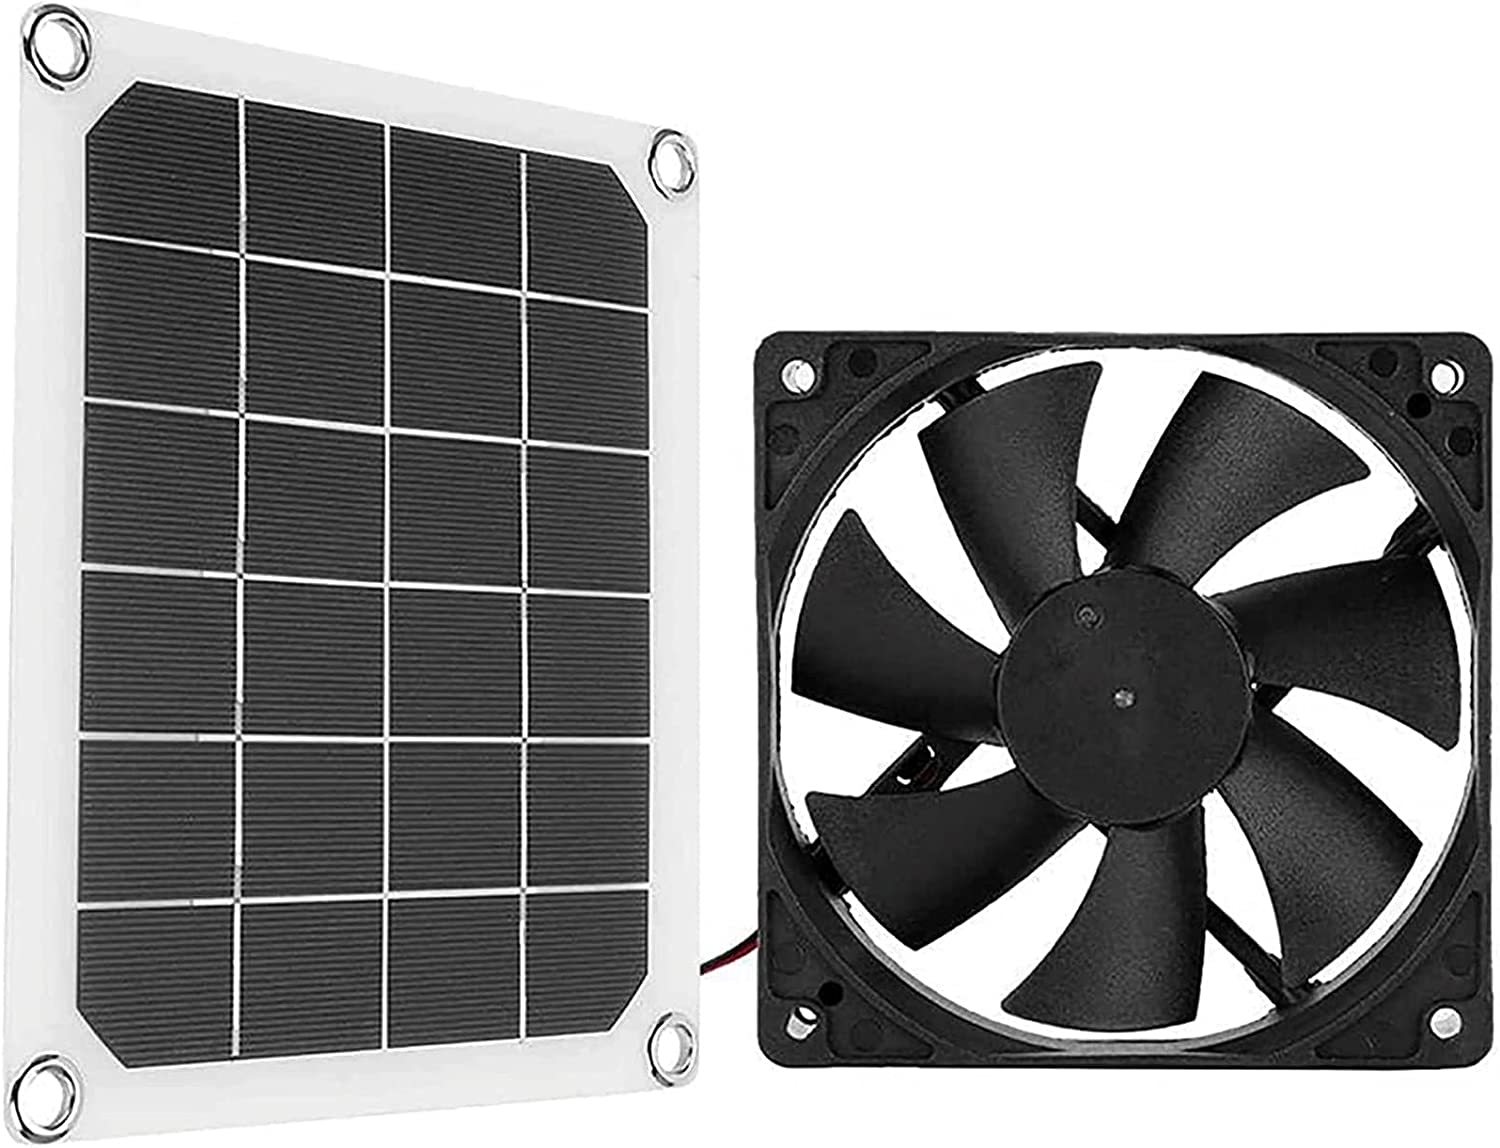 Aweand Solar Panel Fans for Home or Outdoor IP65 Waterproof 10W 6V Solar Exhaust Fan for Dog Chicken House Greenhouse RV Roof Quietly Cools and Ventilates